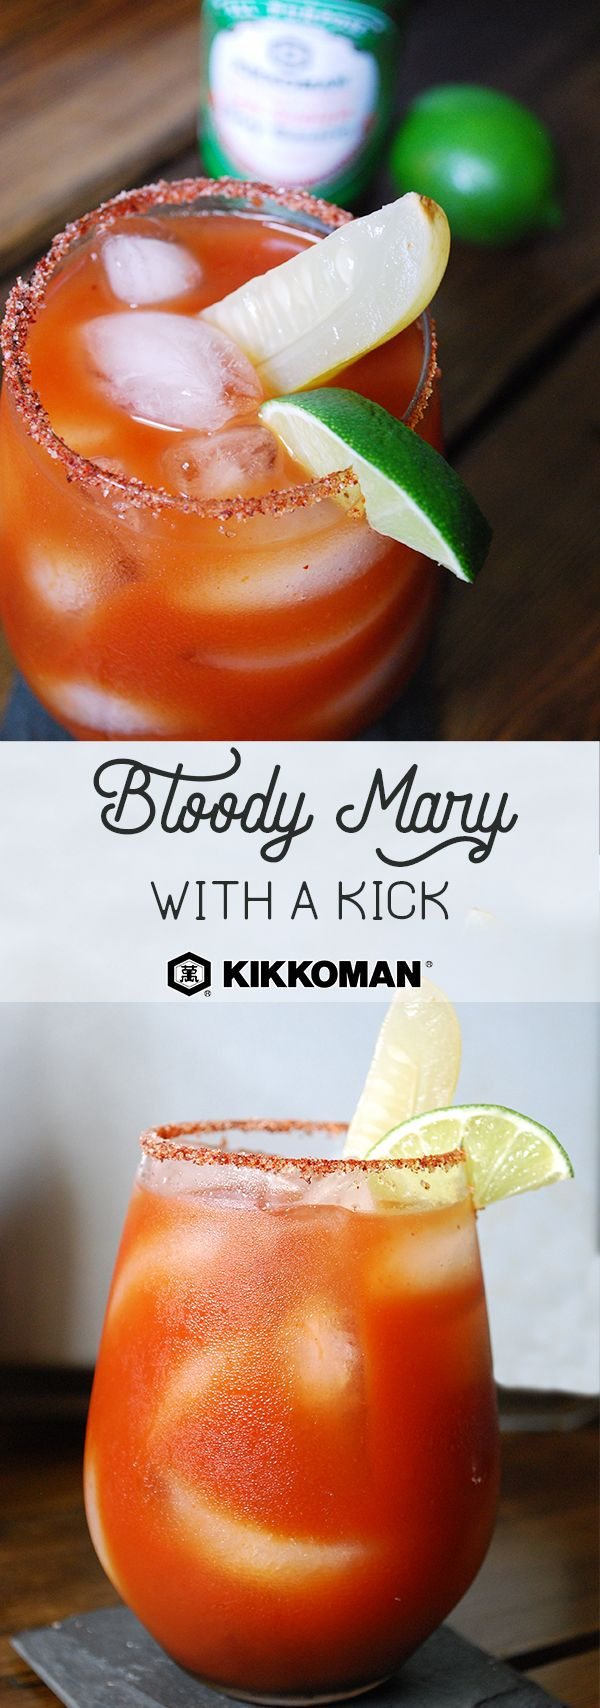 Bloody Mary with a Kick | Some mornings need a kick in the pants and this savoury cocktail should do the trick. Bring some heat to a classic Bloody Mary by adding Kikkoman®️ Sriracha Hot Chili Sauce. A splash of Kikkoman®️ Soy Sauce brings a touch of umami flavor. The perfect pairing for a Sunday brunch. | #Kikkoman #breakfast #breakfastgoals #breakfastlover #breakfastofchampions #breakfasttime #brunch #brunchclub #easyrecipes #quickandeasy #Sriracha #cocktail #bloodymary